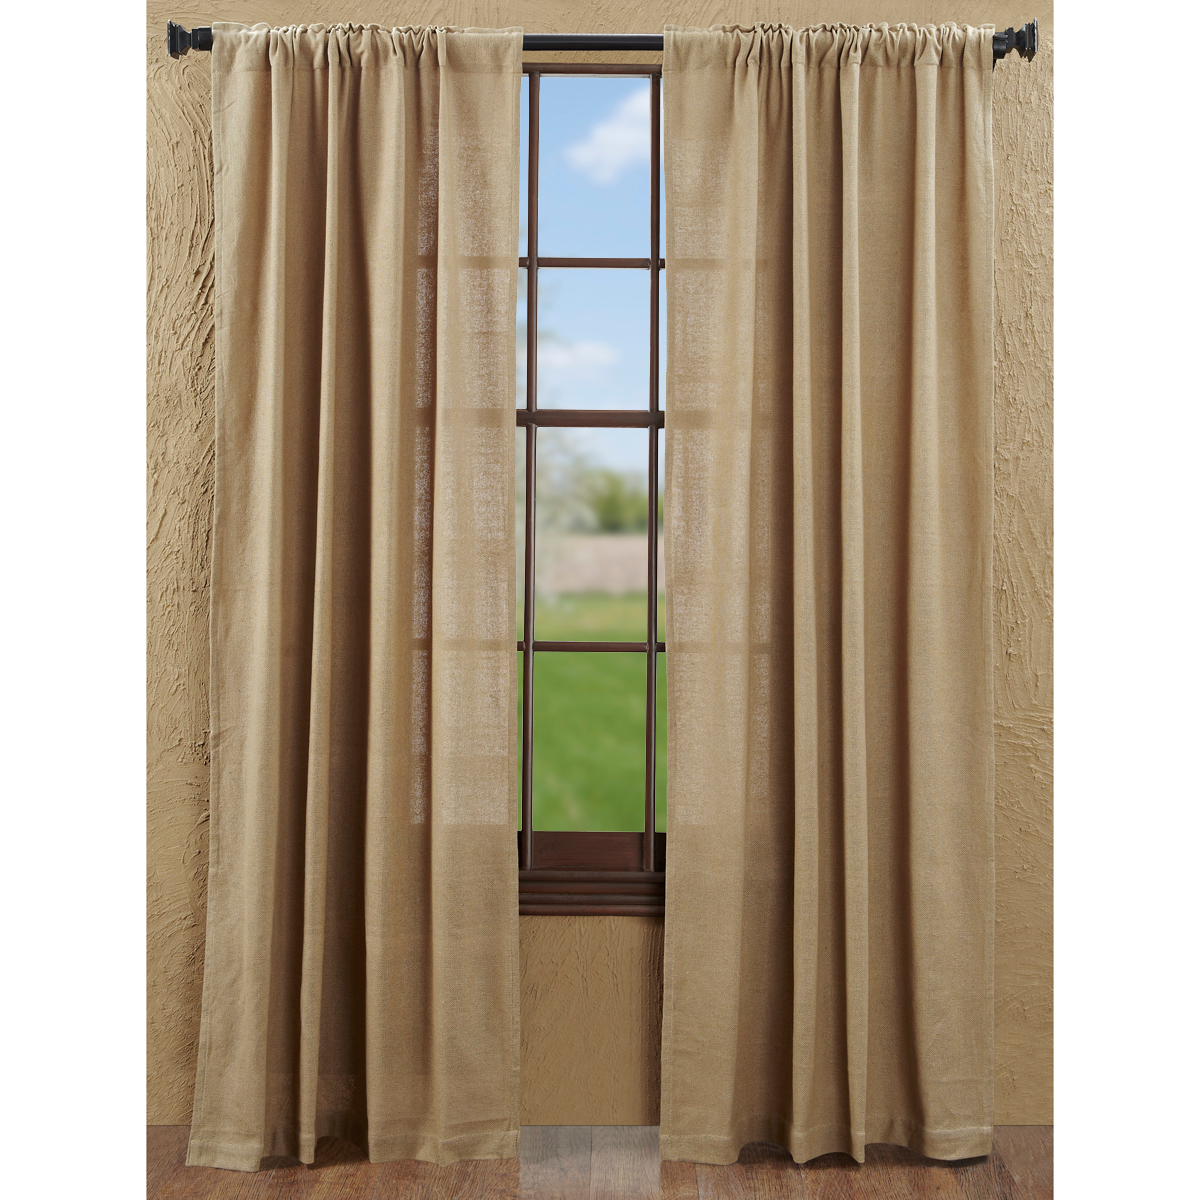 "BLACK COUNTRY STAR 84/"" PANELS CURTAINS LINED 1 PAIR"